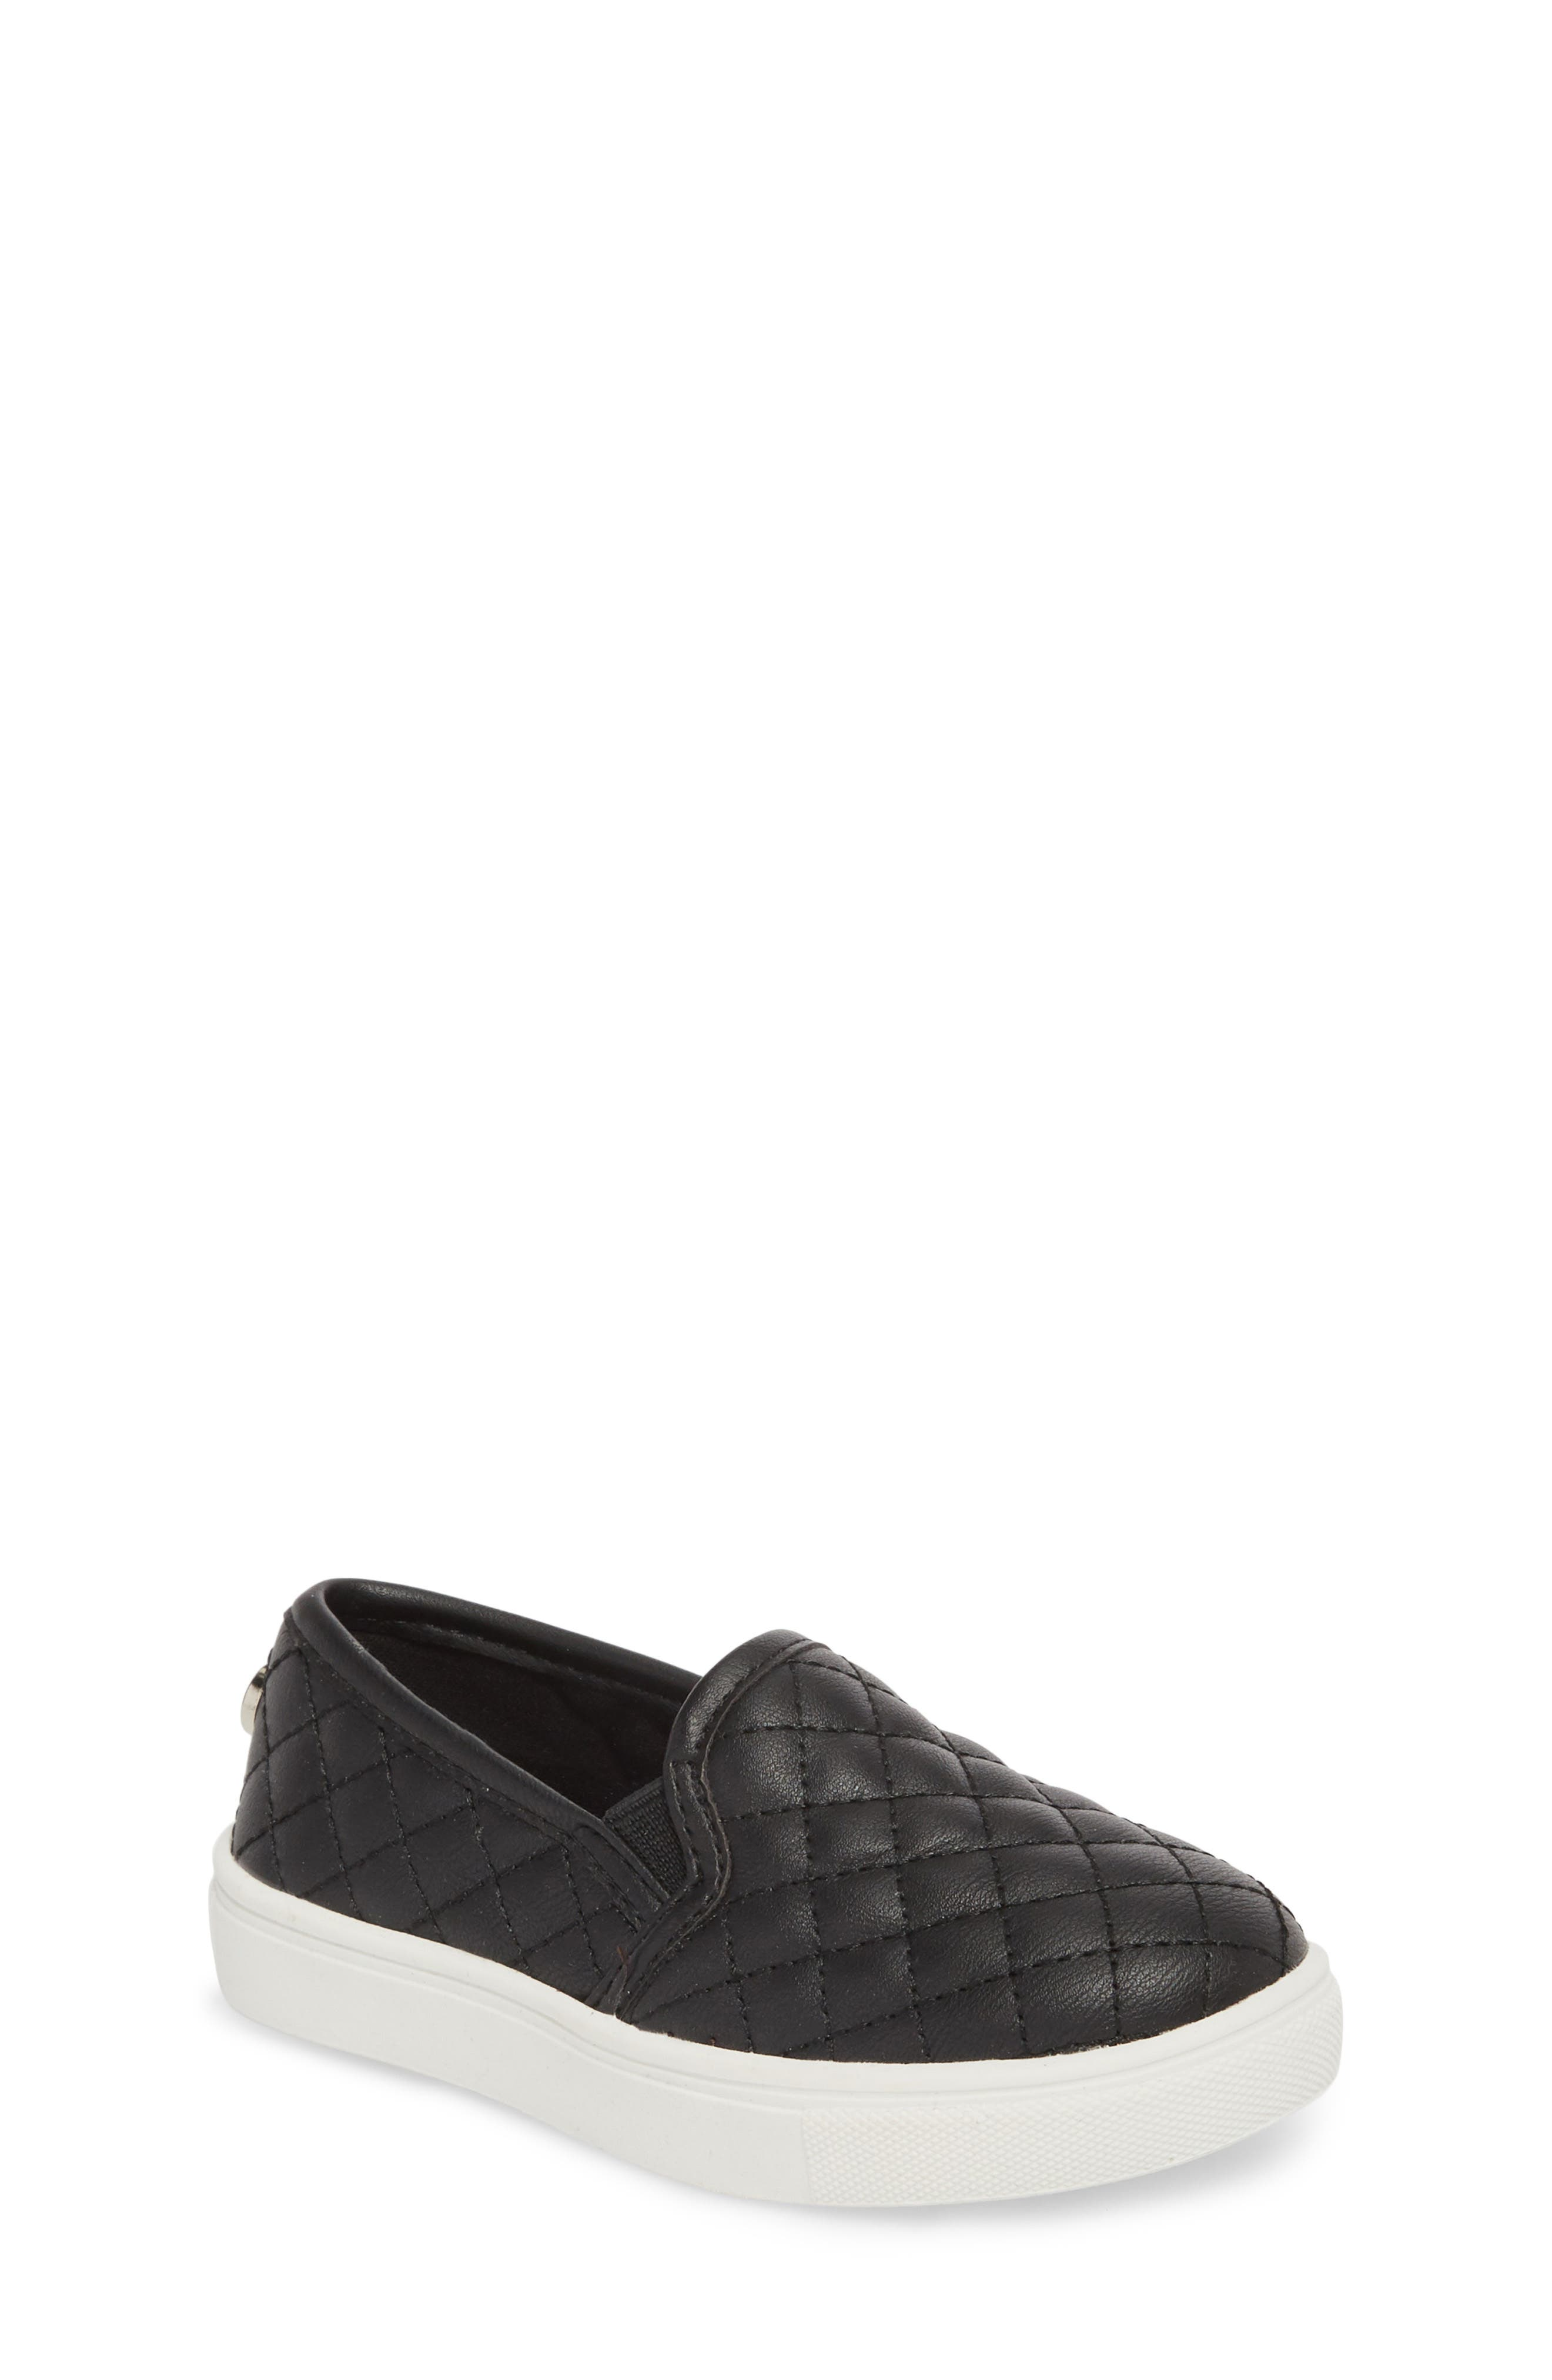 Tecntrc Quilted Slip-On Sneaker,                         Main,                         color, Black